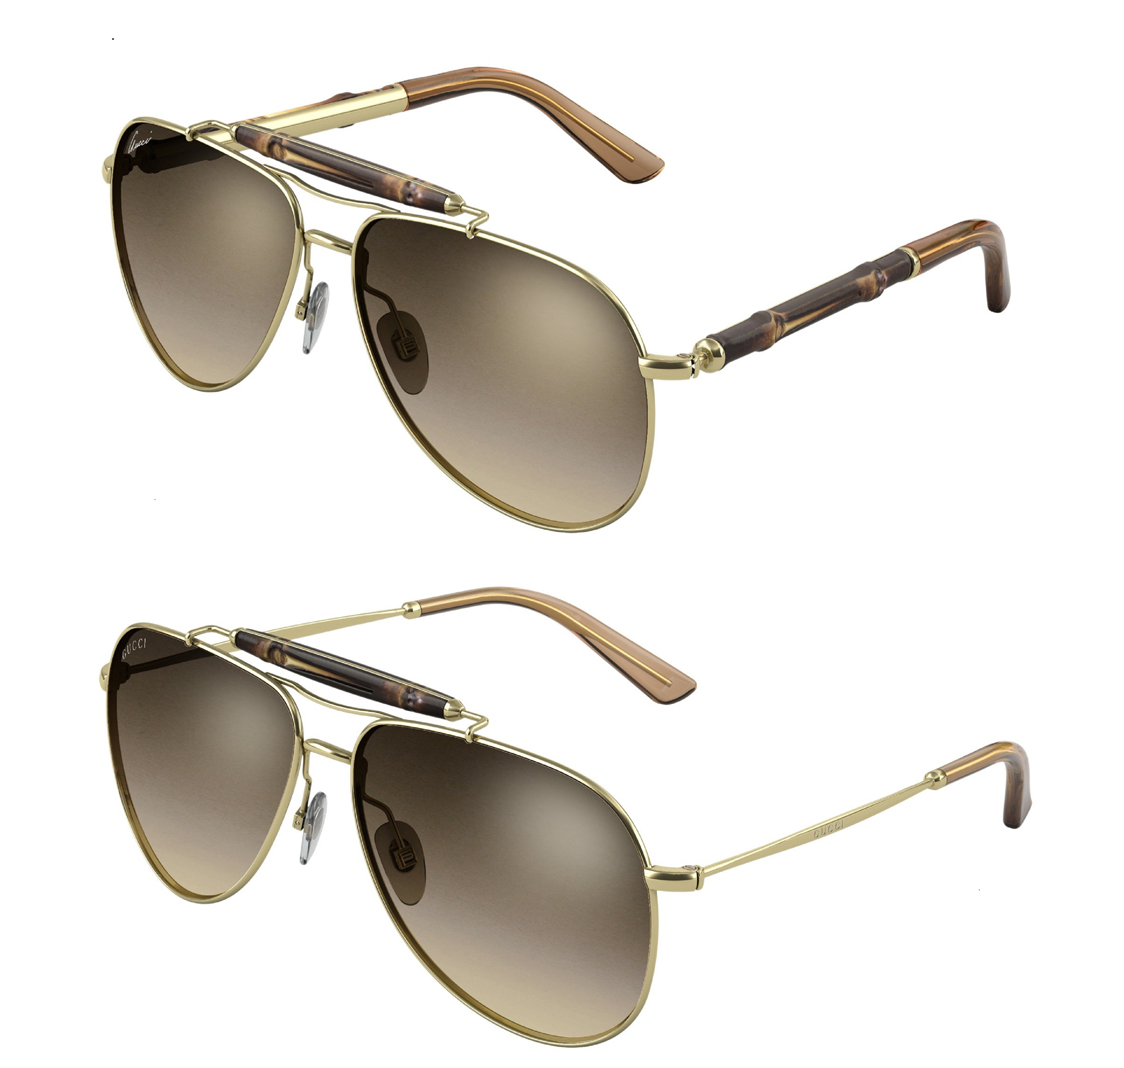 Gucci Sunglasses Bamboo Frame  gucci bamboo sunglasses marie france asia women s magazine